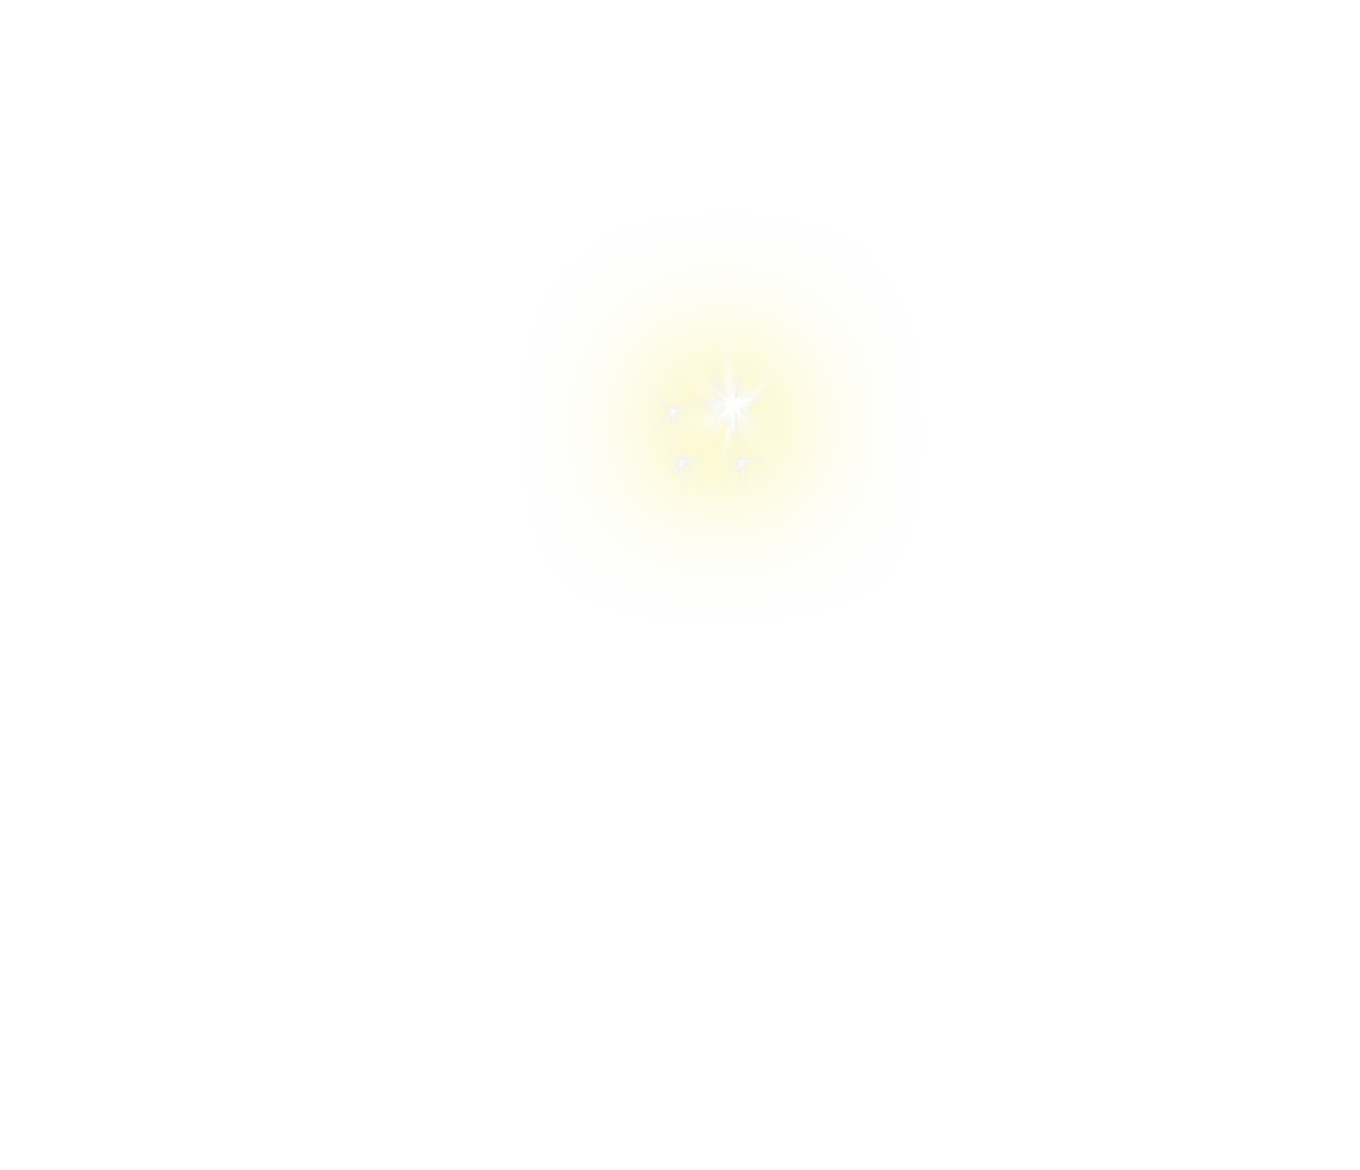 White sparkles png. Sparkle yellow  vector transparent download